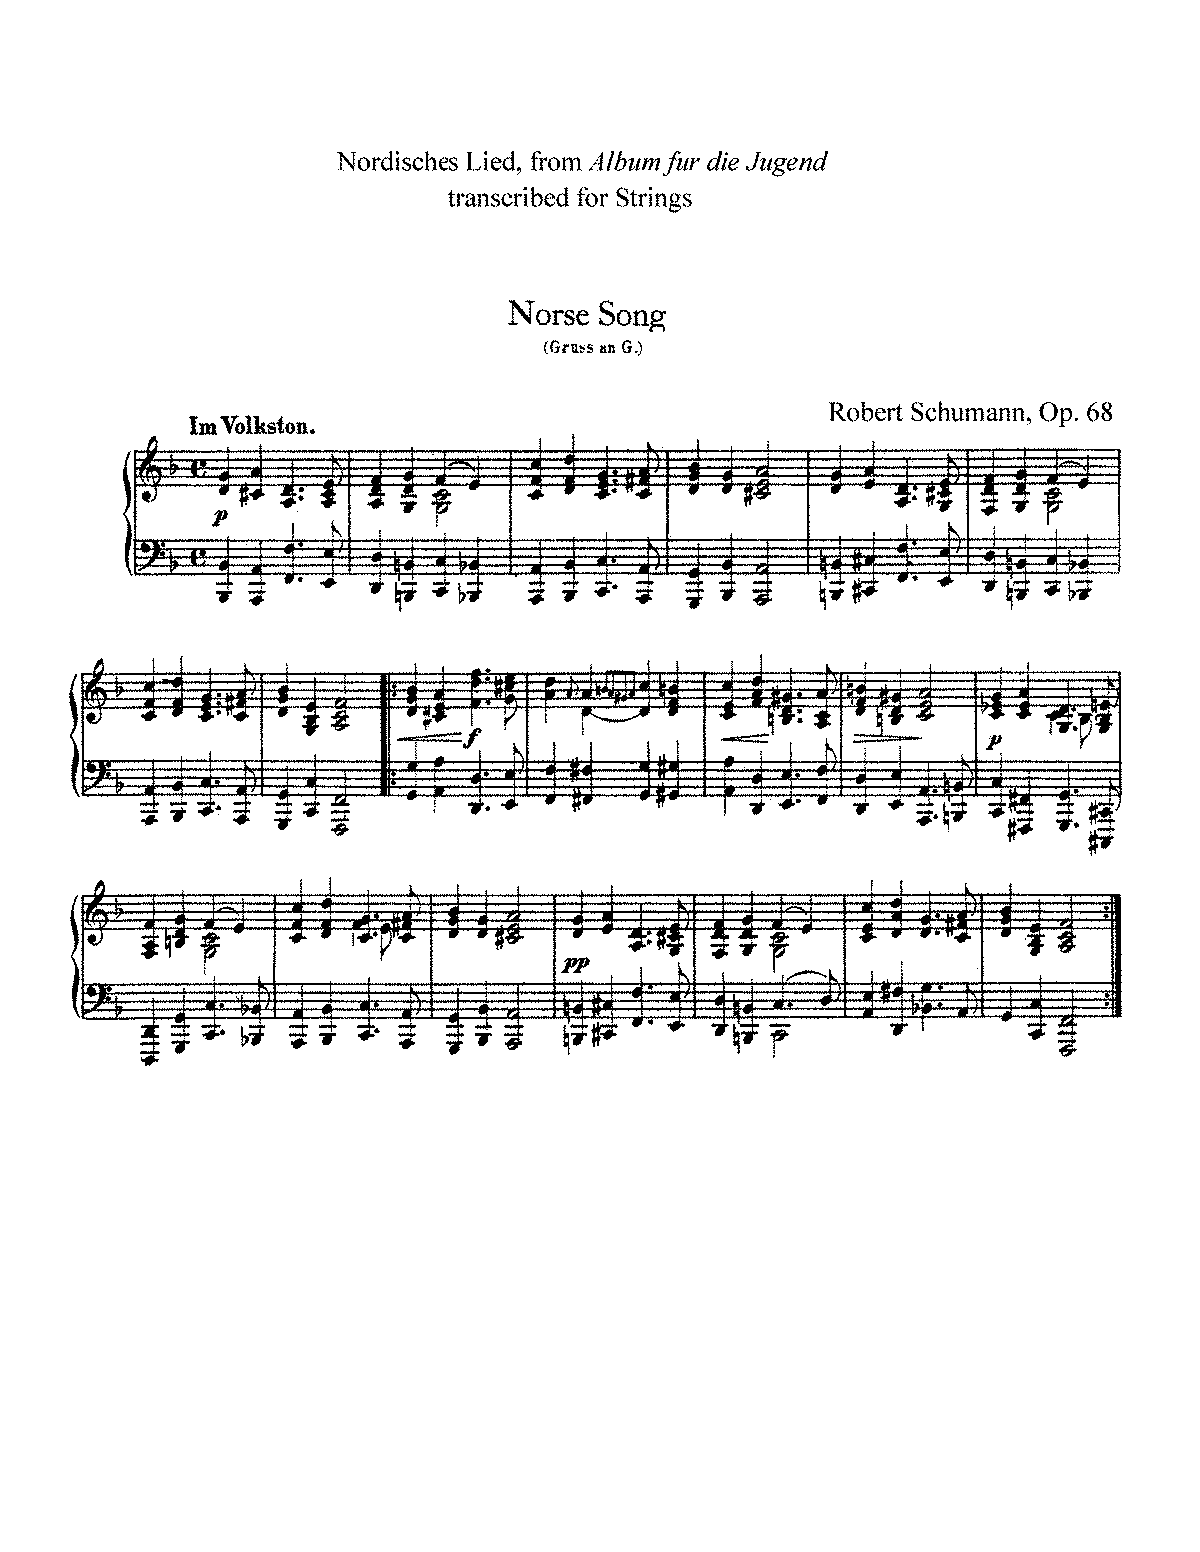 PMLP02707-SCHUMANN Nordic Song from Op. 68 arr STRINGS.pdf